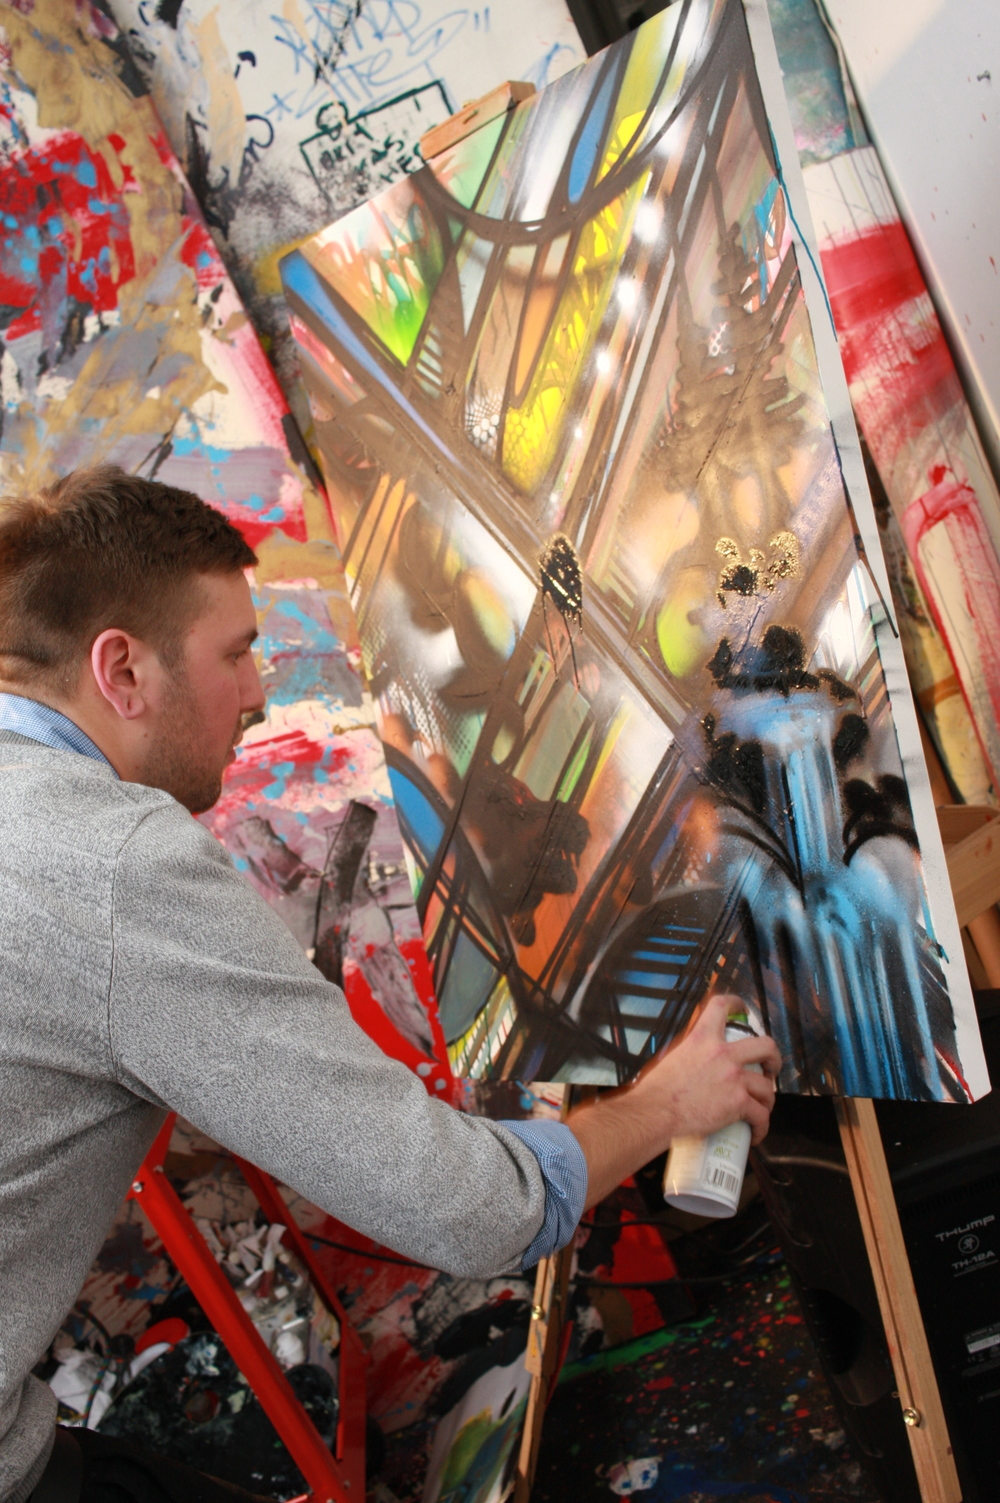 Ryan Smith responding to input from a guest to add a waterfall to his painting on 1.9.15